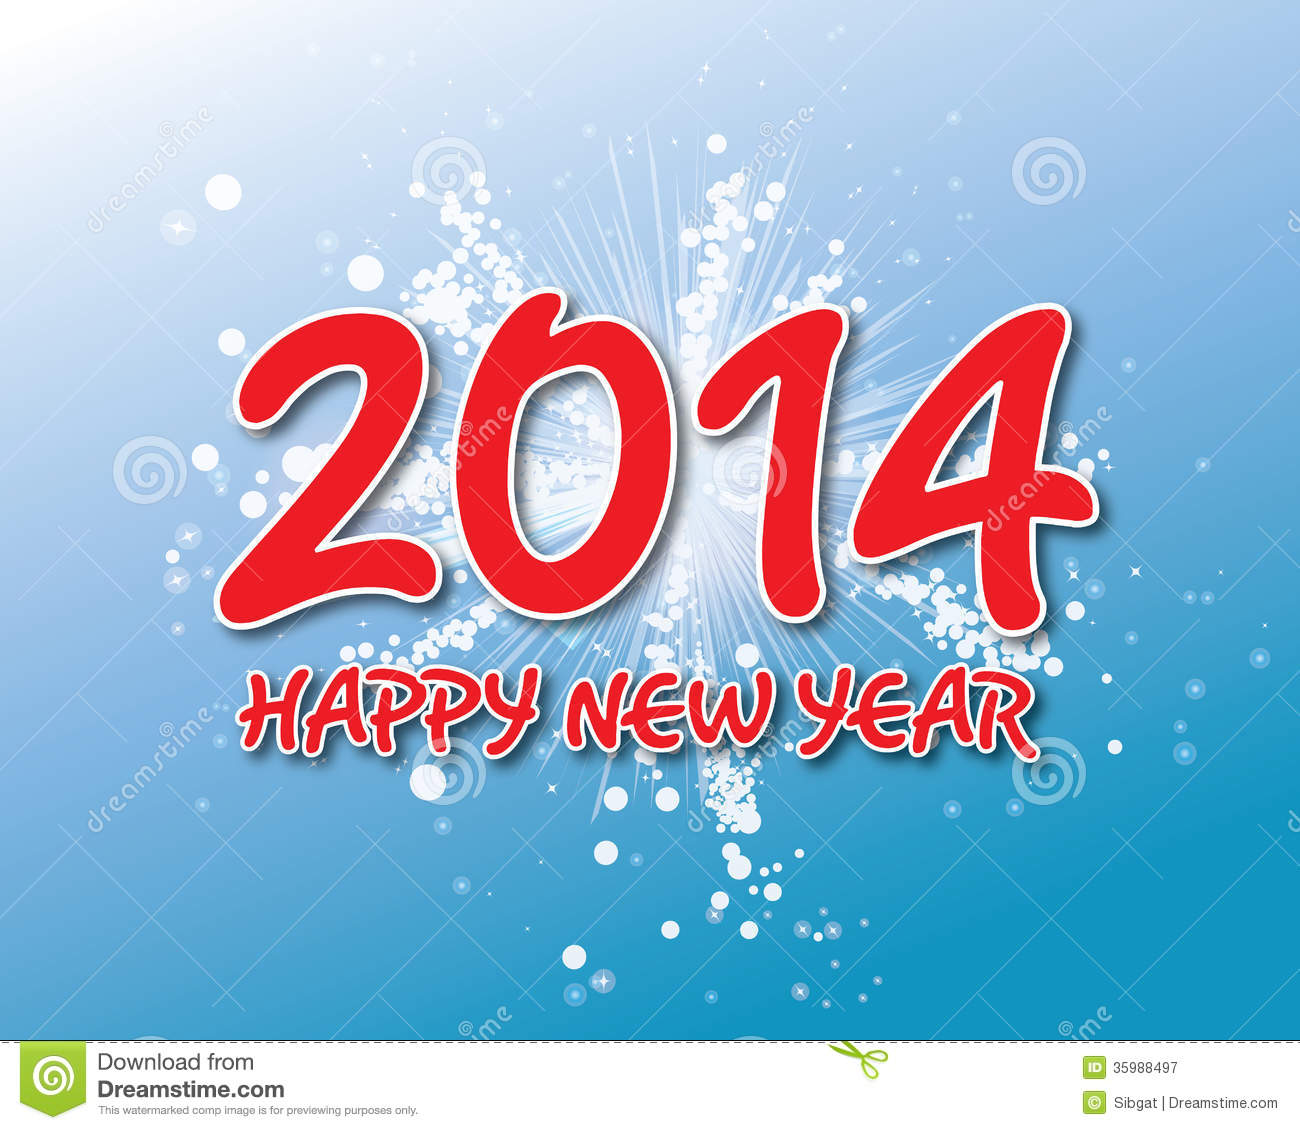 New year 2014 illustrations and clipart   Can Stock Photo